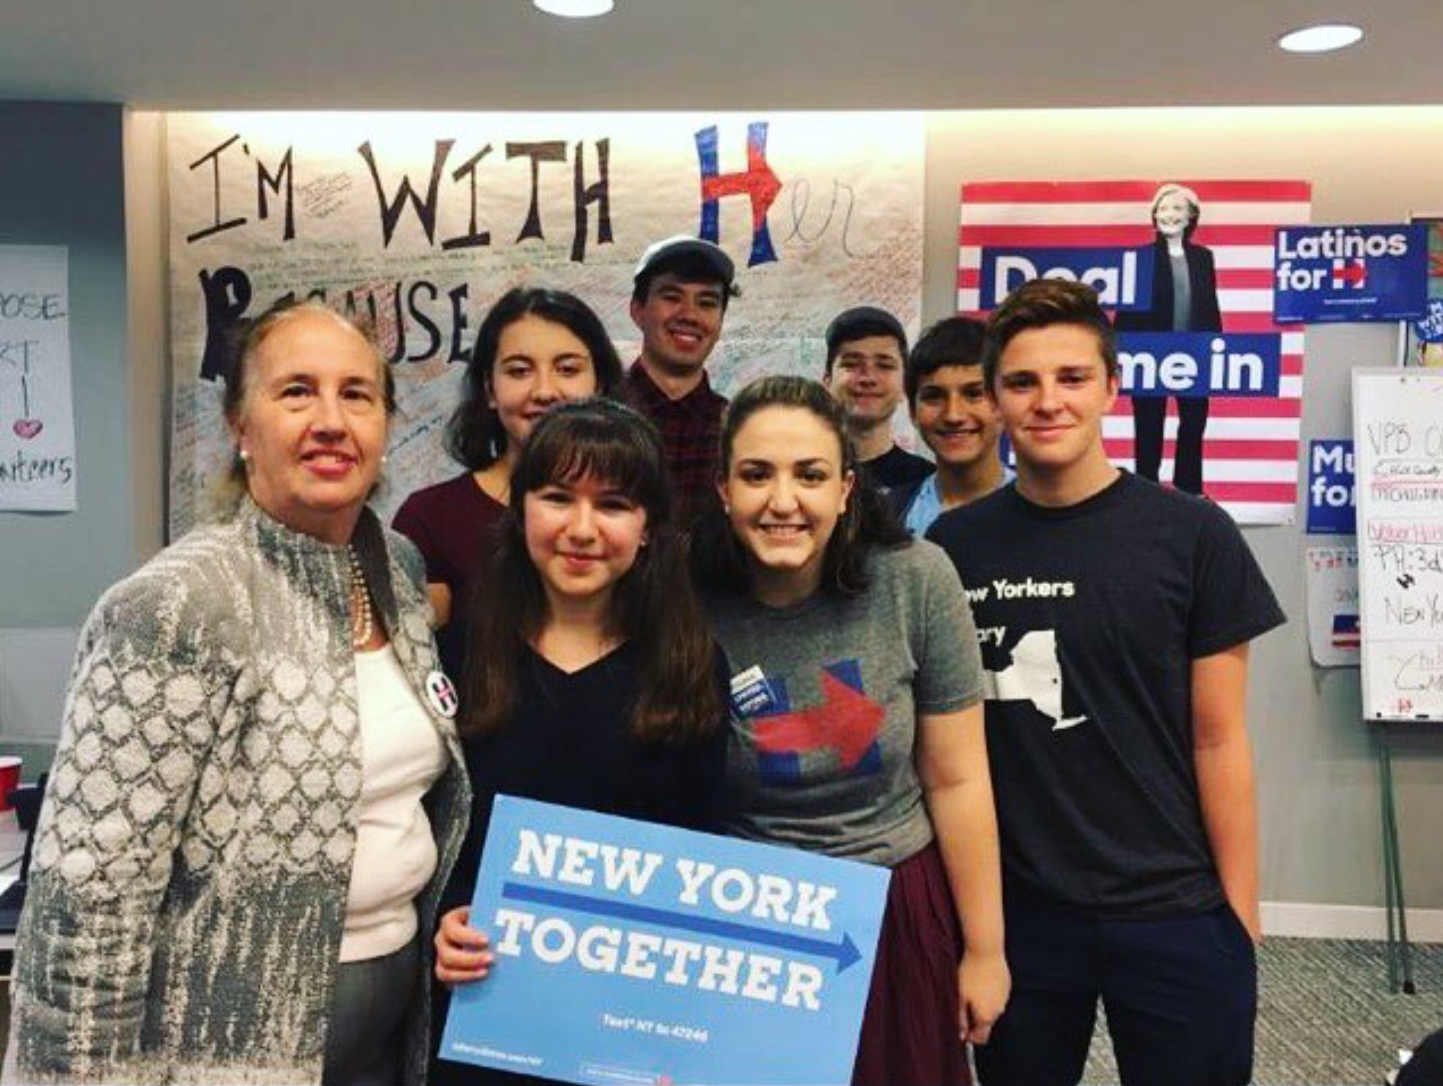 Manhattan Borough President Gail Collins spoke at a teen phone-banking event held by New York State Young Democrats and the High Schoolers for Hillary Organization.